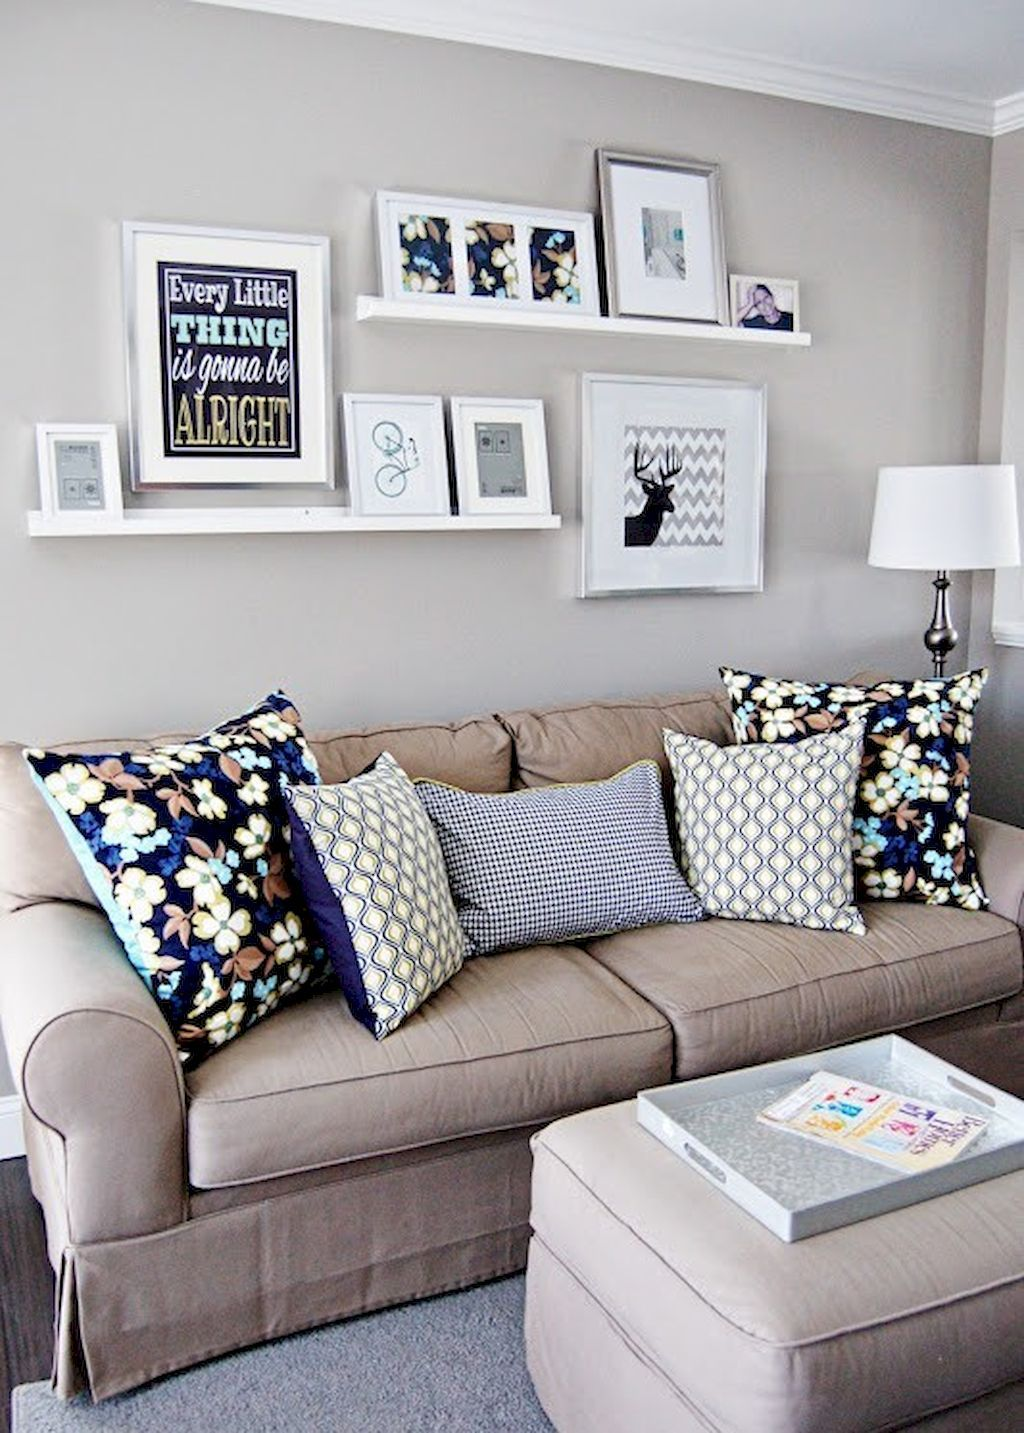 Decorating Small Living Room Wall Decor Ideas Above Couch Gallery